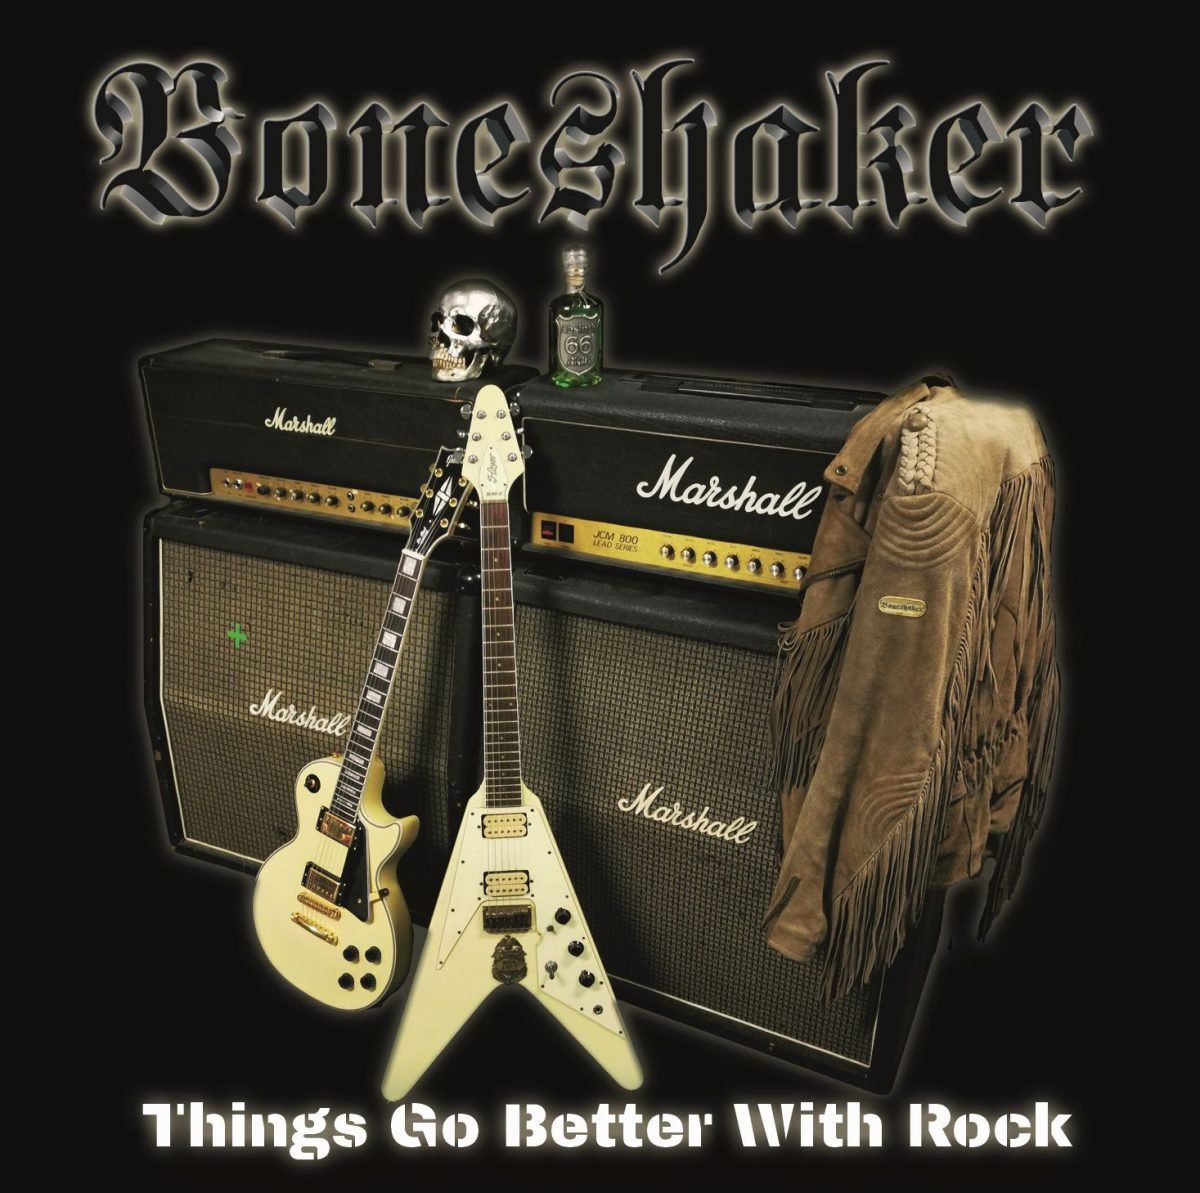 boneshaker-things-go-better-with-rock-ein-cover-album-review